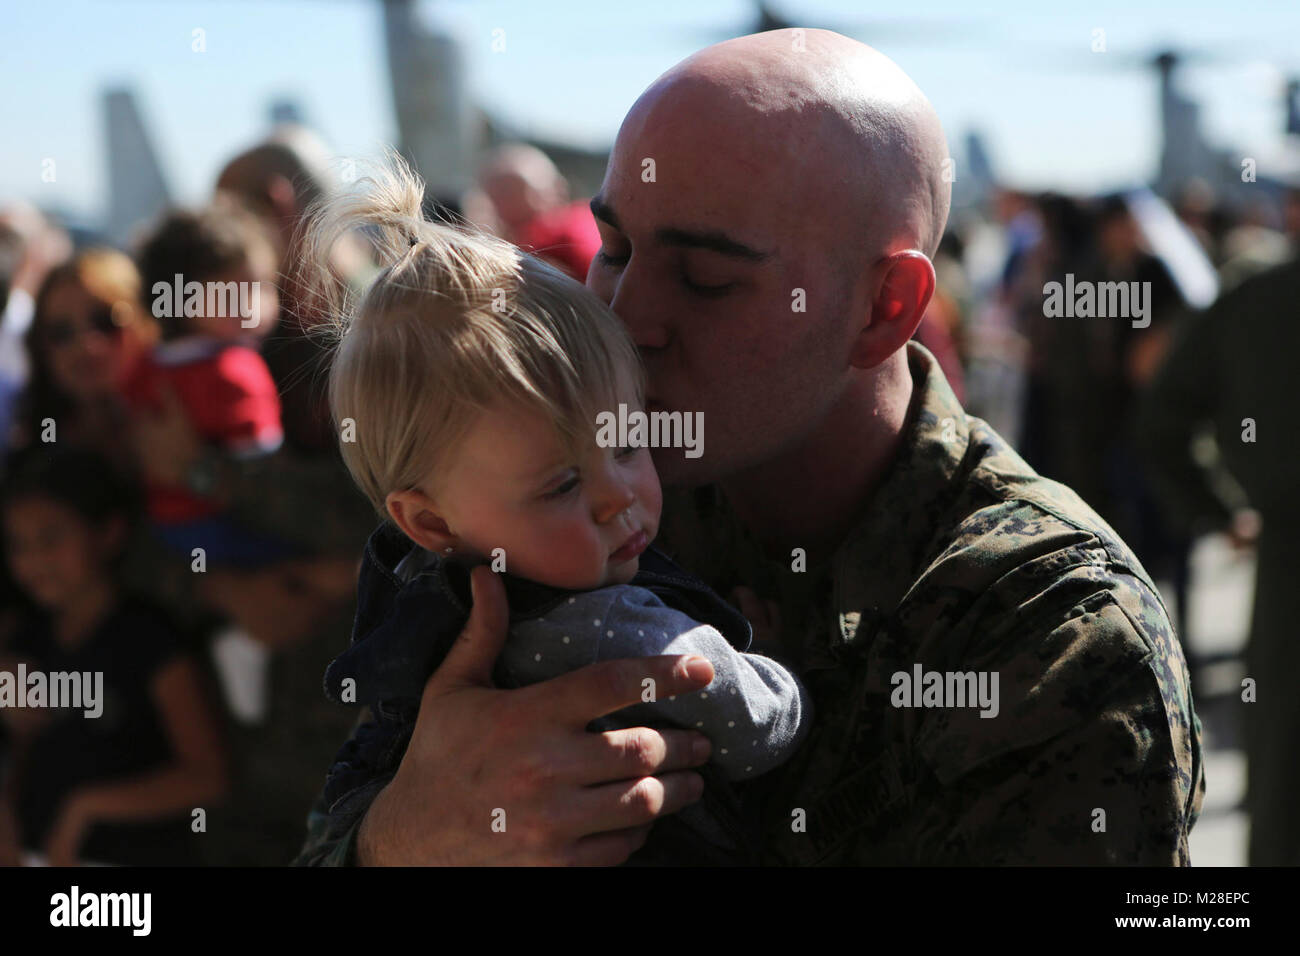 A father reunites with his son following the 15th Marine Expeditionary Unit's aviation combat element's return to Marine Corps Air Station Miramar, Calif., Feb. 1. During the deployment, more than 4,500 Marines and Sailors of the America Amphibious Readiness Group and embarked 15th MEU conducted maritime security operations and multiple military-to-military exchanges with partner nations in support of regional security, stability and the free flow of maritime commerce in the Indo-Asia-Pacific and Middle East regions. Stock Photo